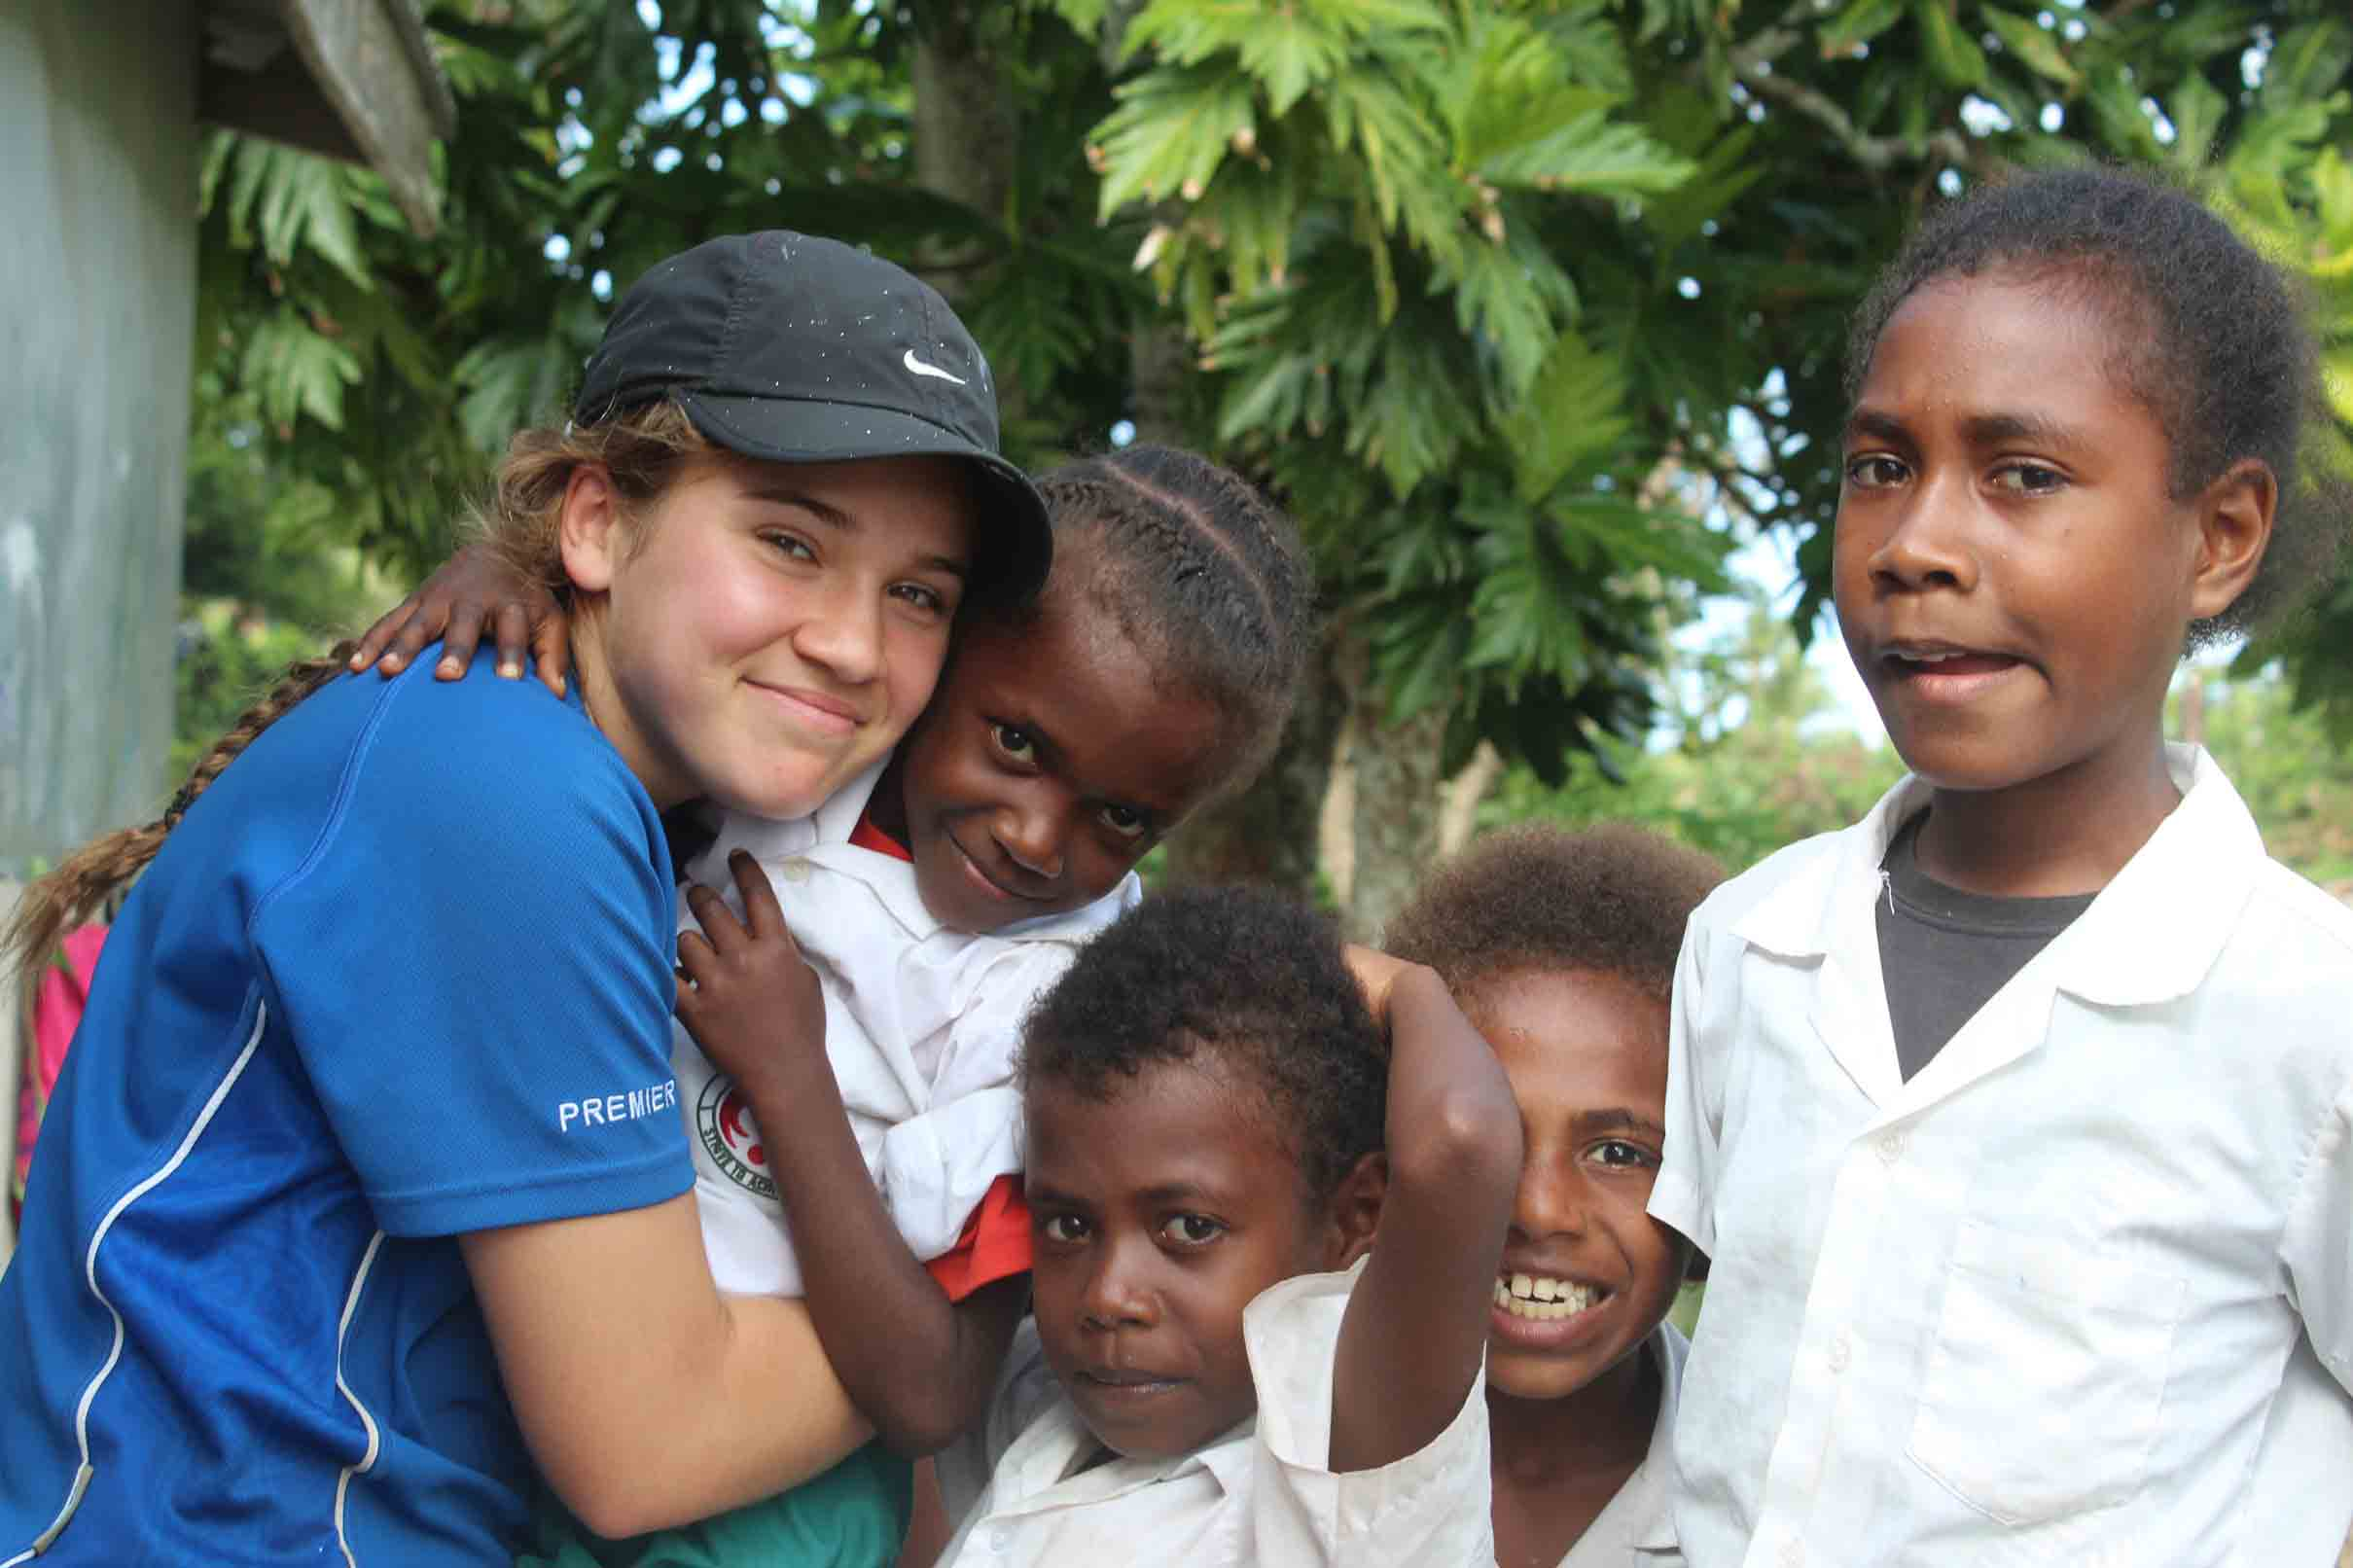 57 Saint-Kentigern-Senior-College-Trip-to-Vanuatu.jpg